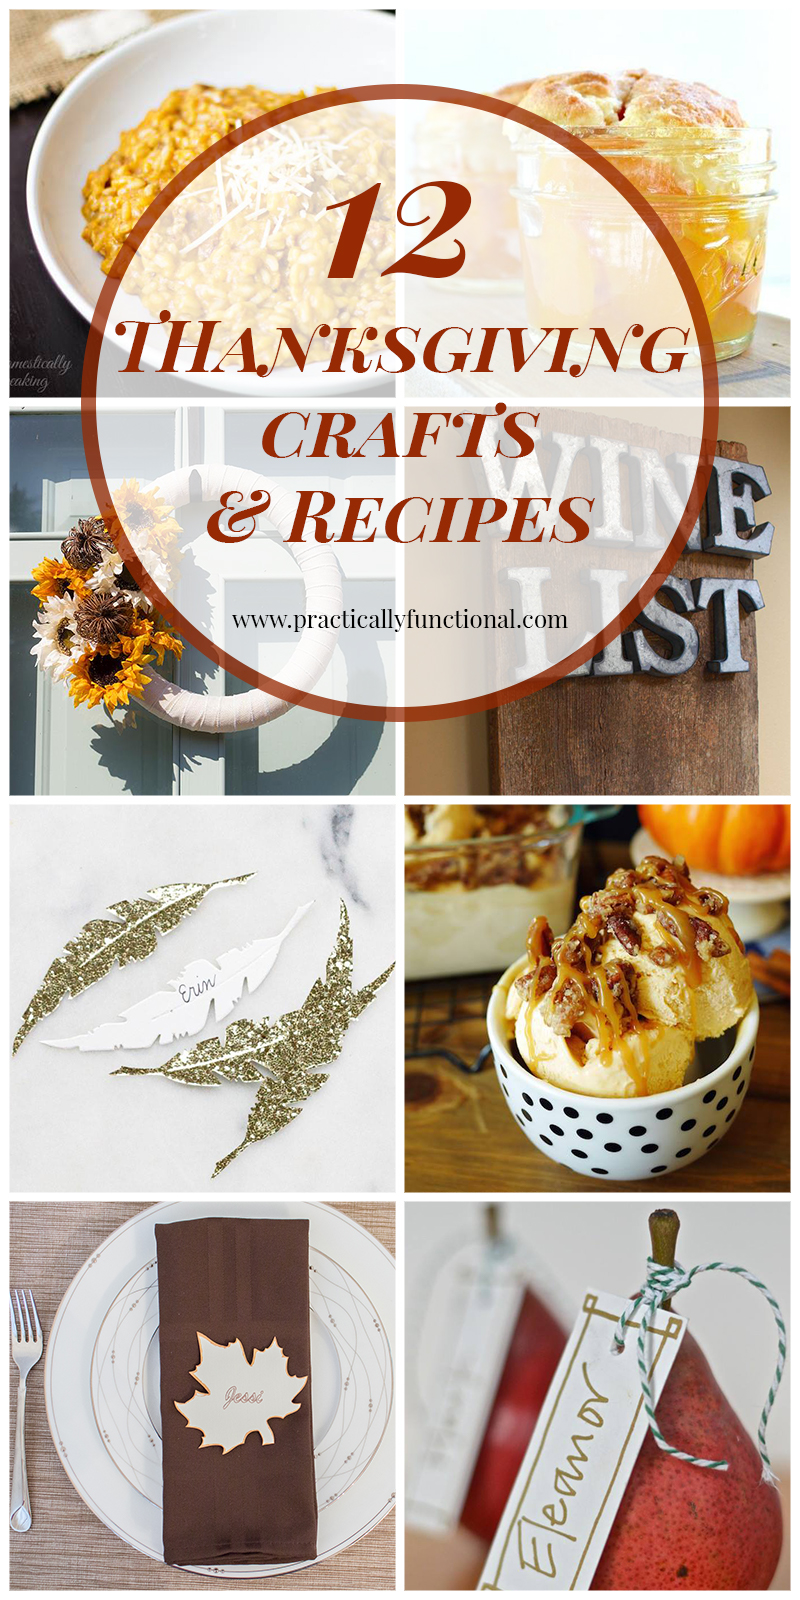 12 Thanksgiving Crafts and Recipes